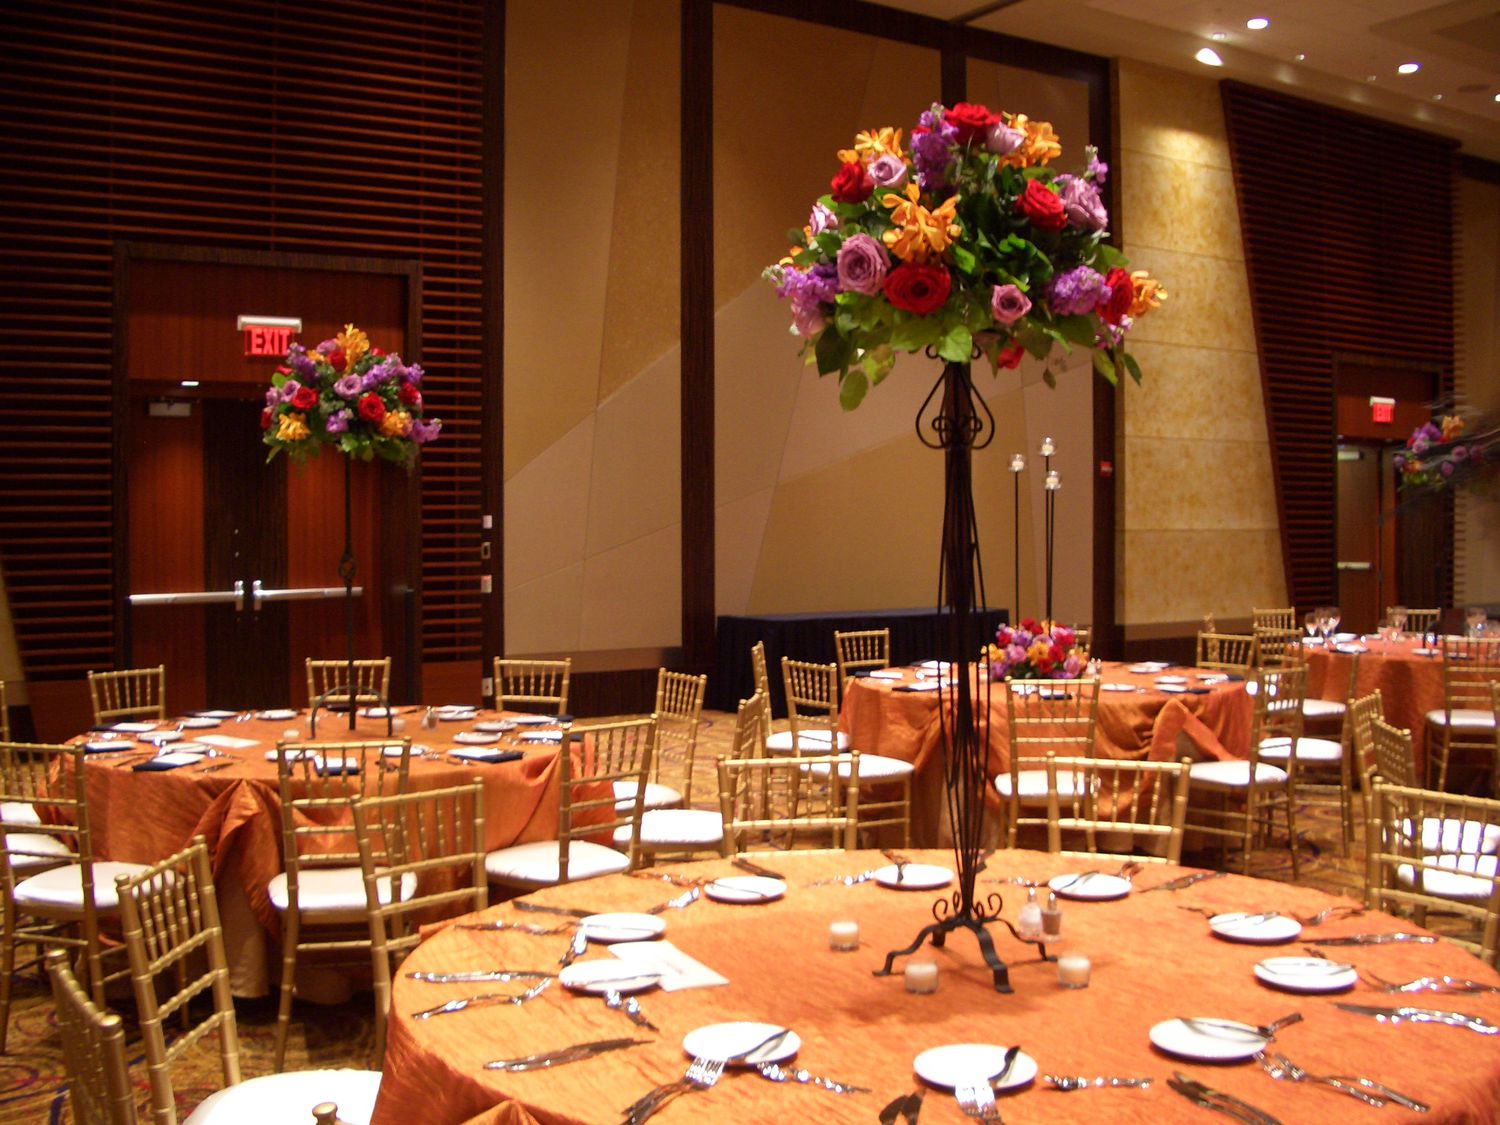 Carithers Wedding Reception Flowers Centerpieces Decorations